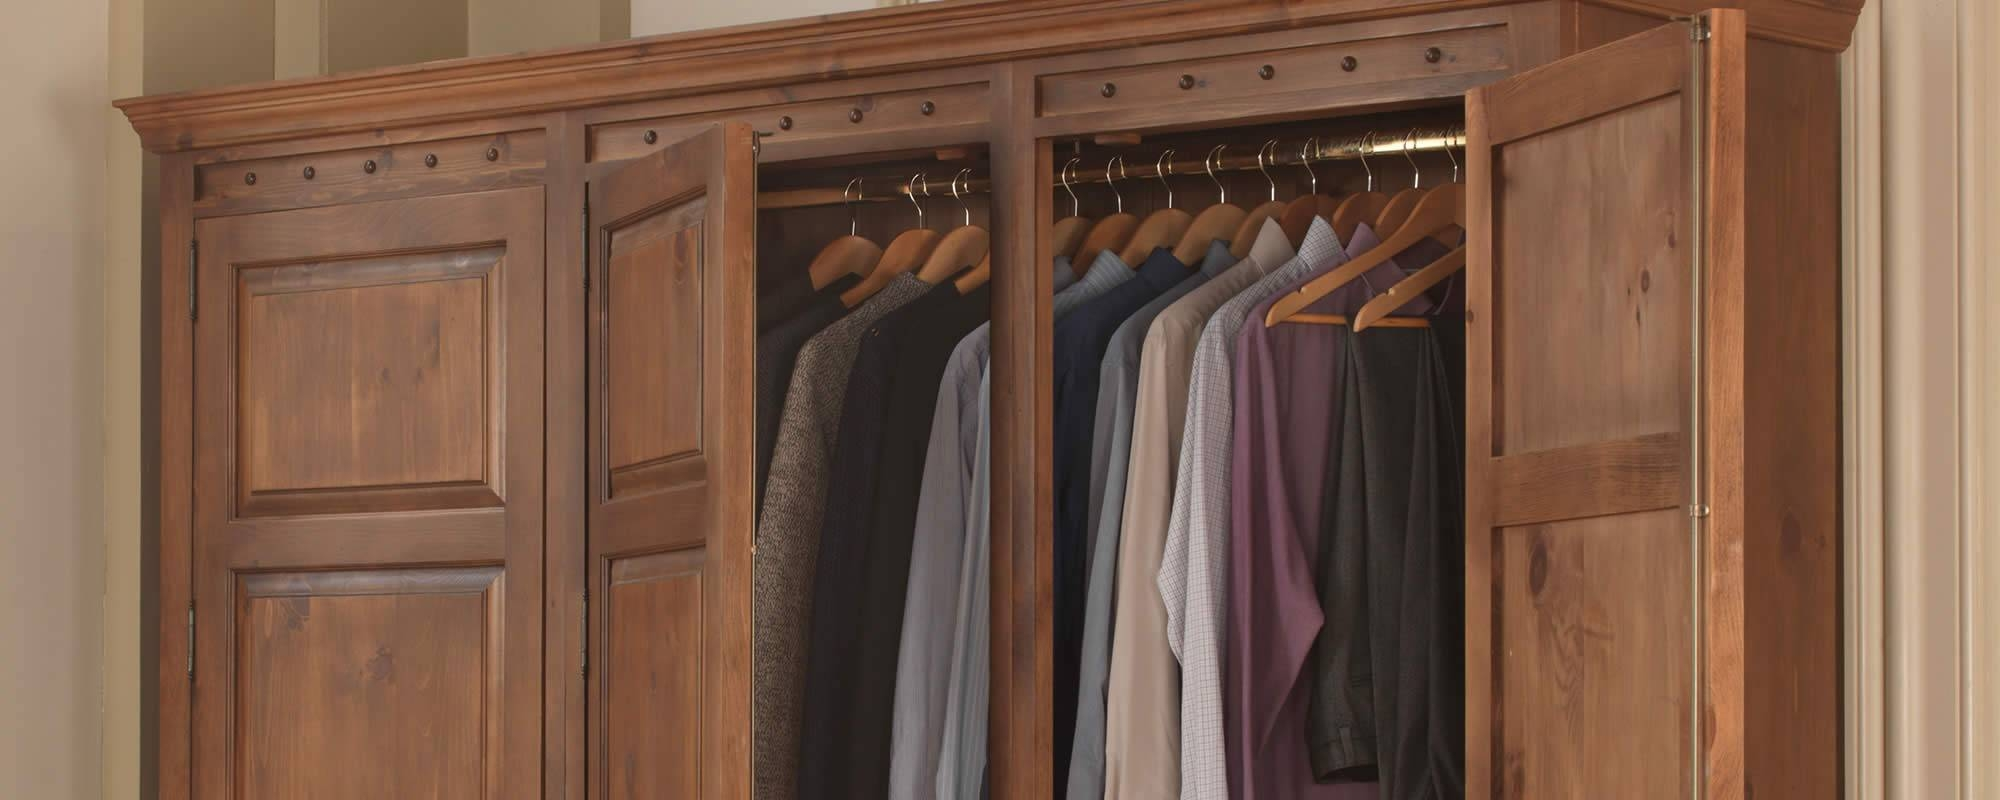 Wardrobes – Hand Built In Solid Woodbritish Craftsmen Intended For Solid Wood Built In Wardrobes (View 28 of 30)